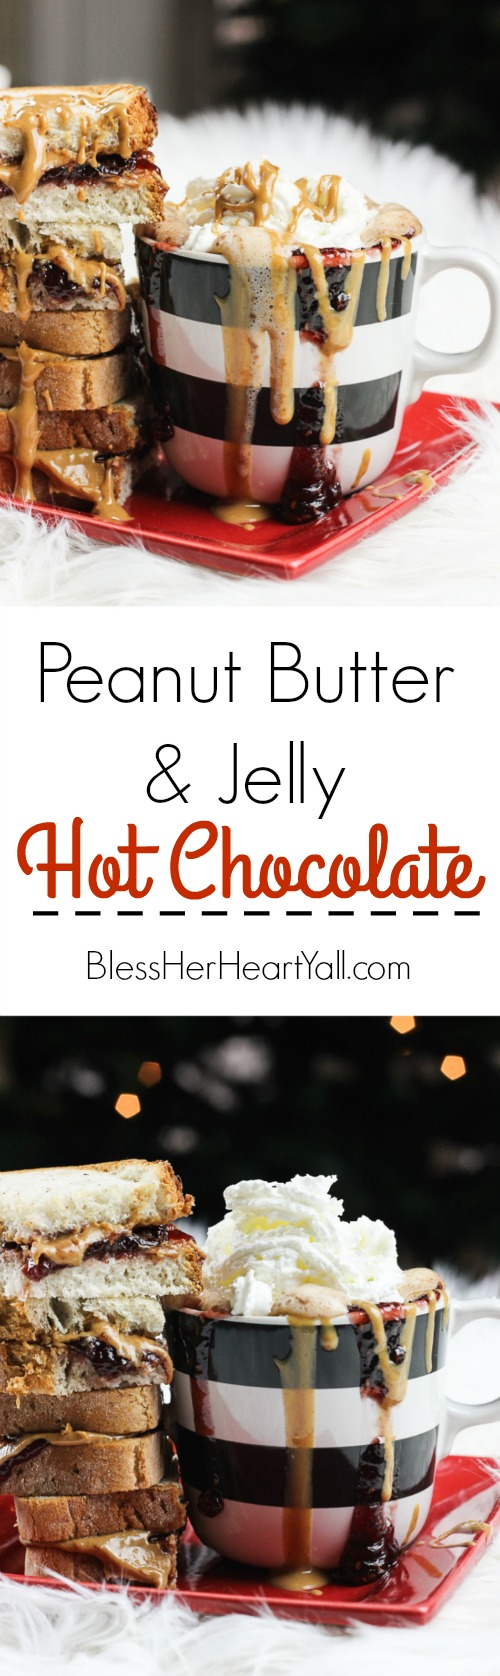 This peanut butter and jelly hot chocolate is a decadent and rich twist on the classic hot chocolate! Melting smooth chocolate with creamy peanut butter and sweetened with your favorite berry flavor, make this an instant cold-weathered favorite! www.blessherheartyall.com